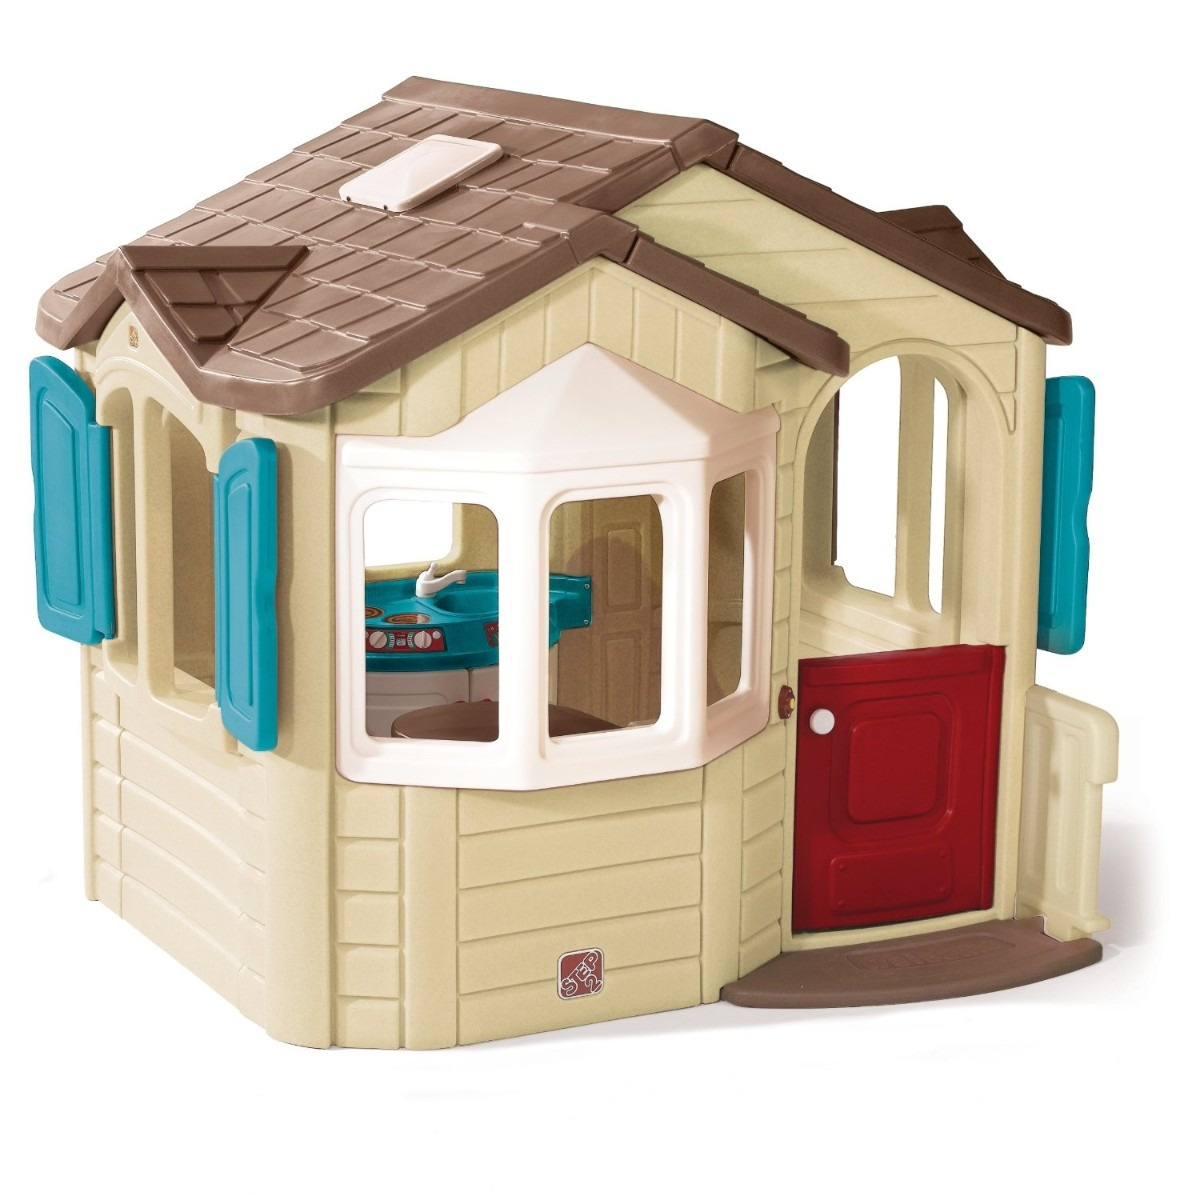 Casa casita infantil juegos ni os playhouse step2 pm0 for Casa de jardin ninos